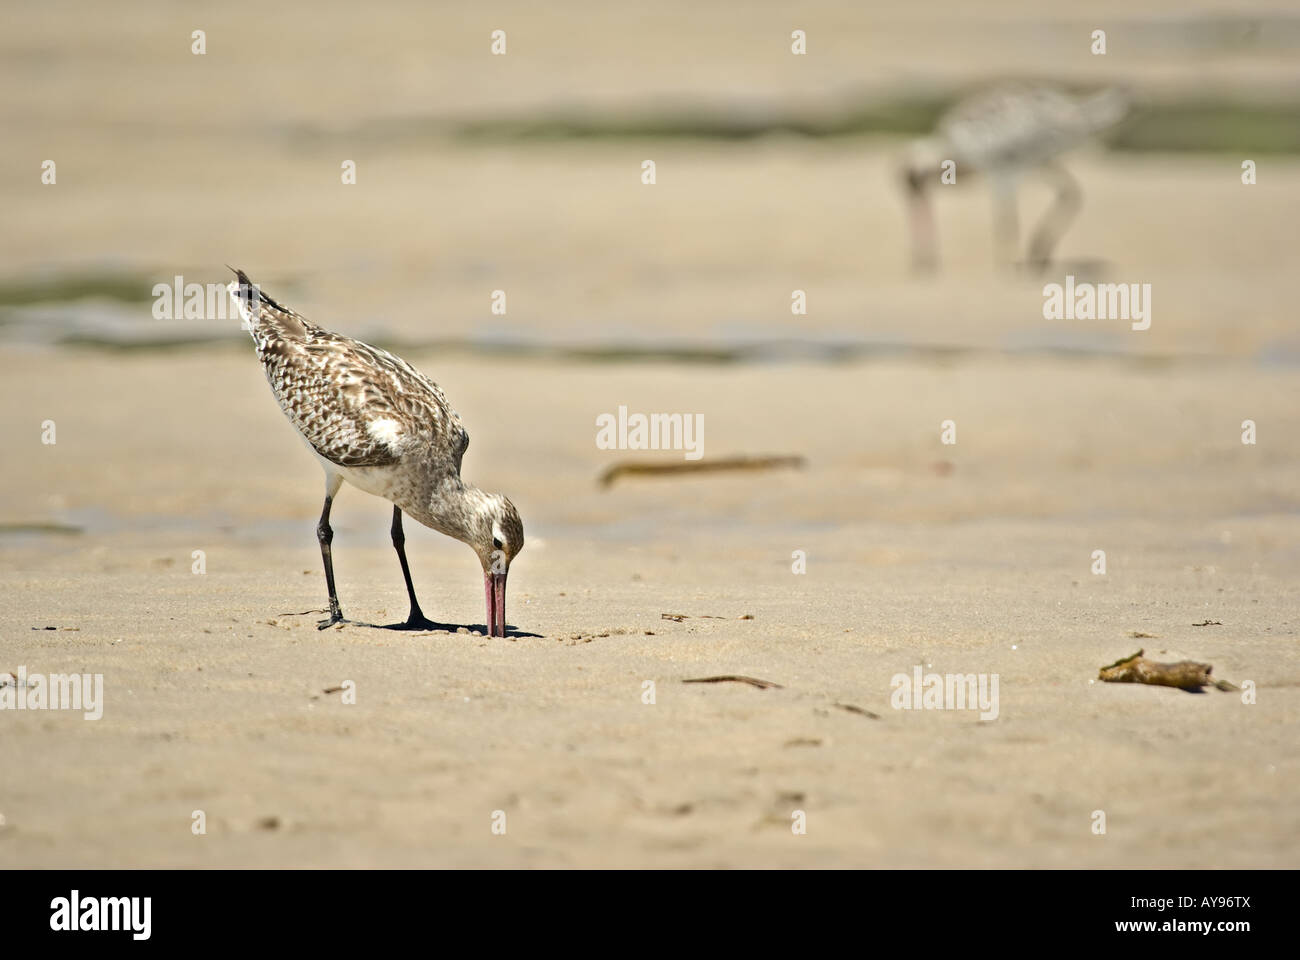 sand piper digs for food at the beach - Stock Image